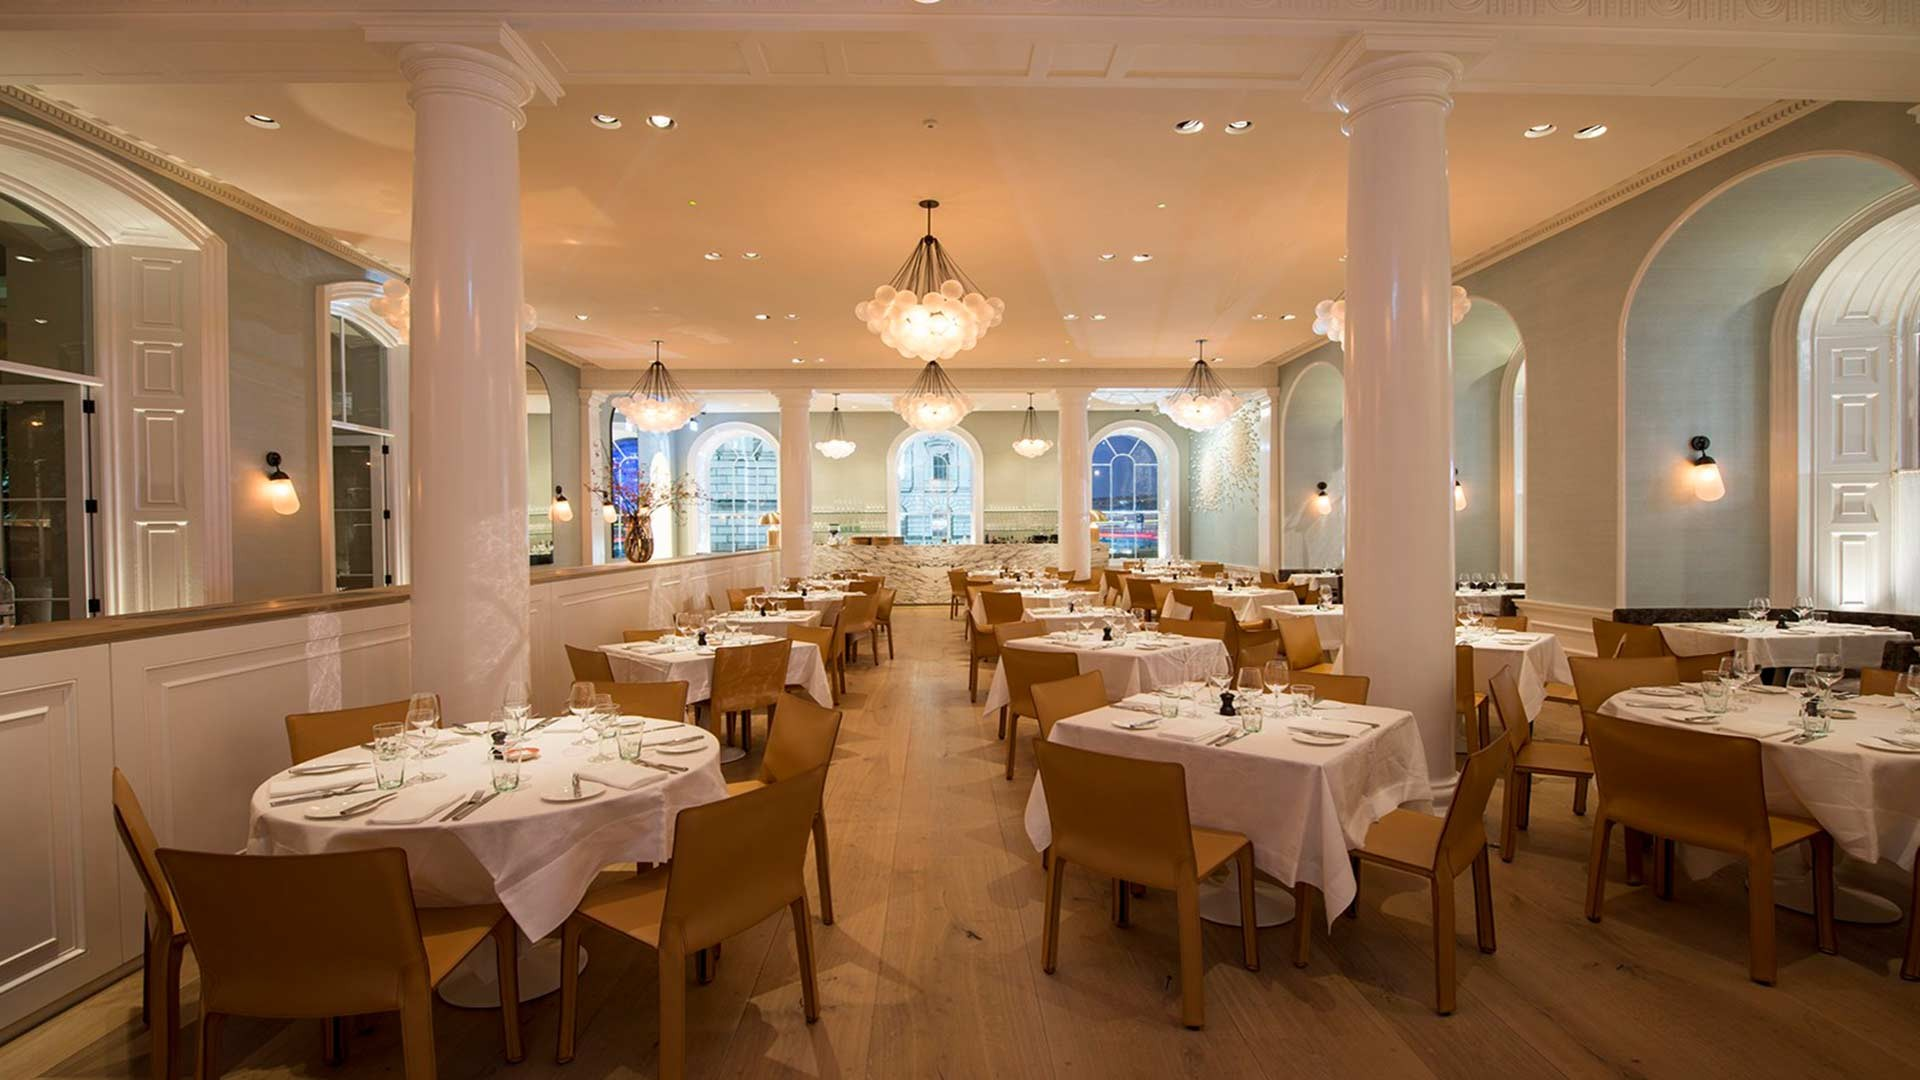 Arched Windows Grand Historic Dining Somerset House Nulty